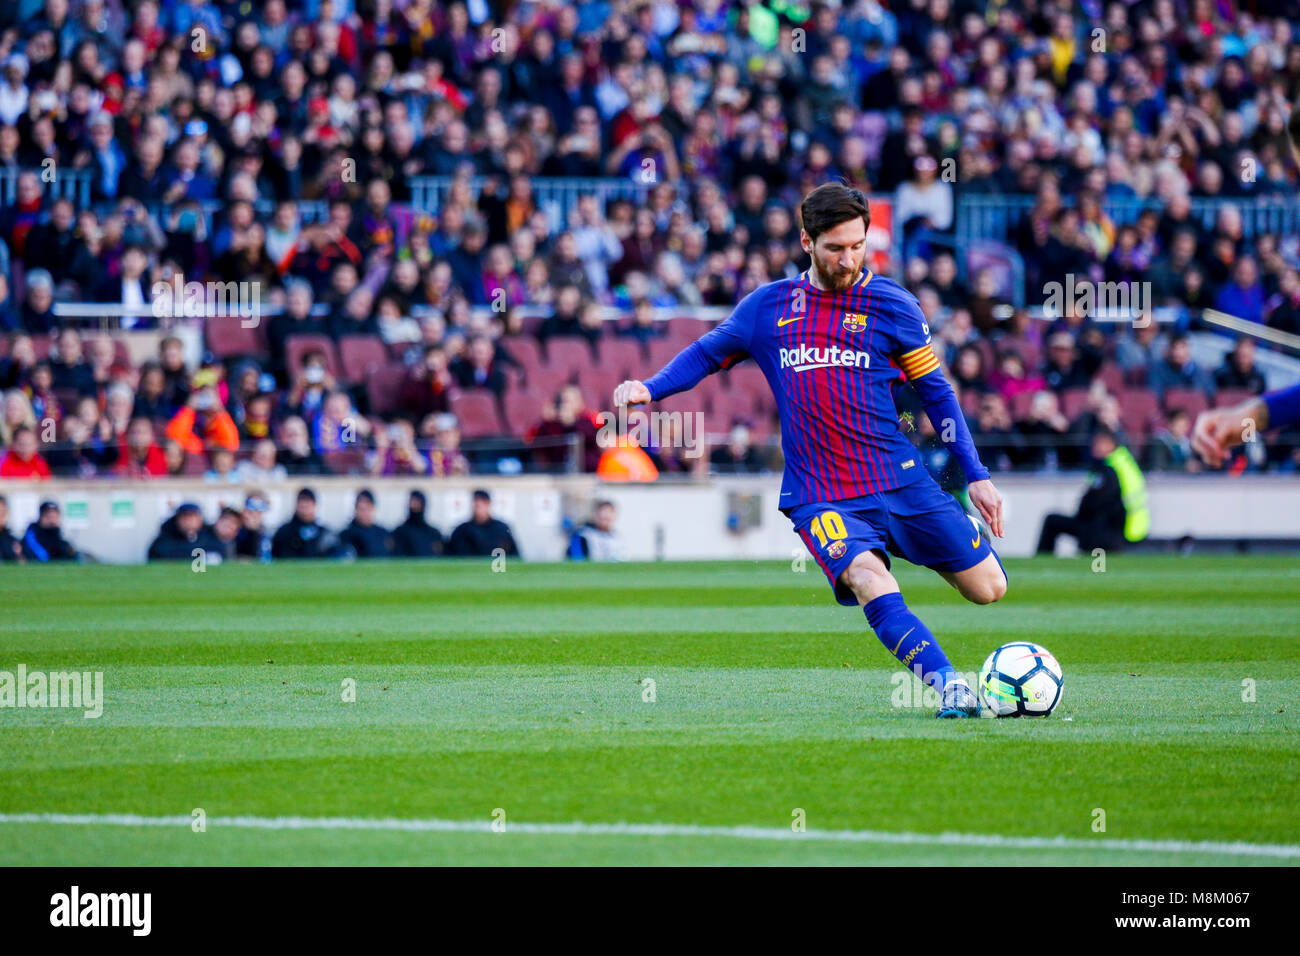 March 18, 2018 - Barcelona, Barcelona, Spain -   (10) Messi during the La Liga match between FC Barcelona and Ath. - Stock Image